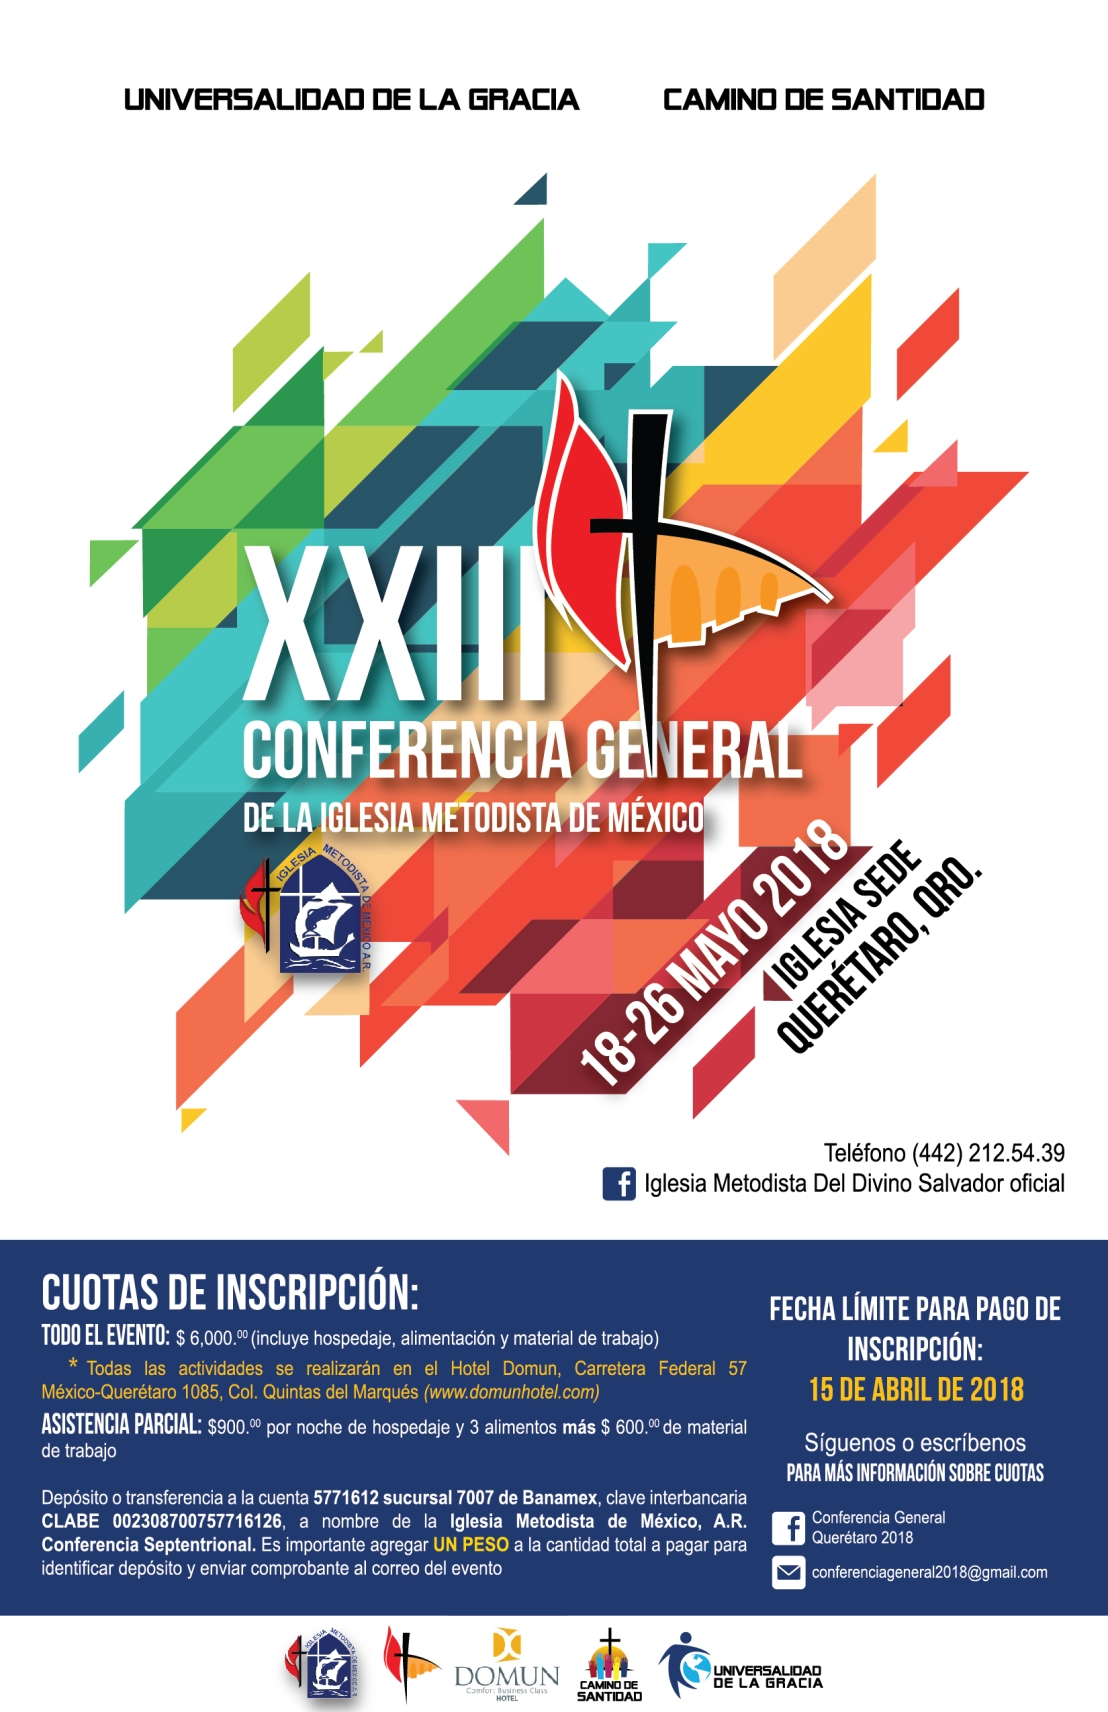 2. XXIII Conferencia General de la IMMAR